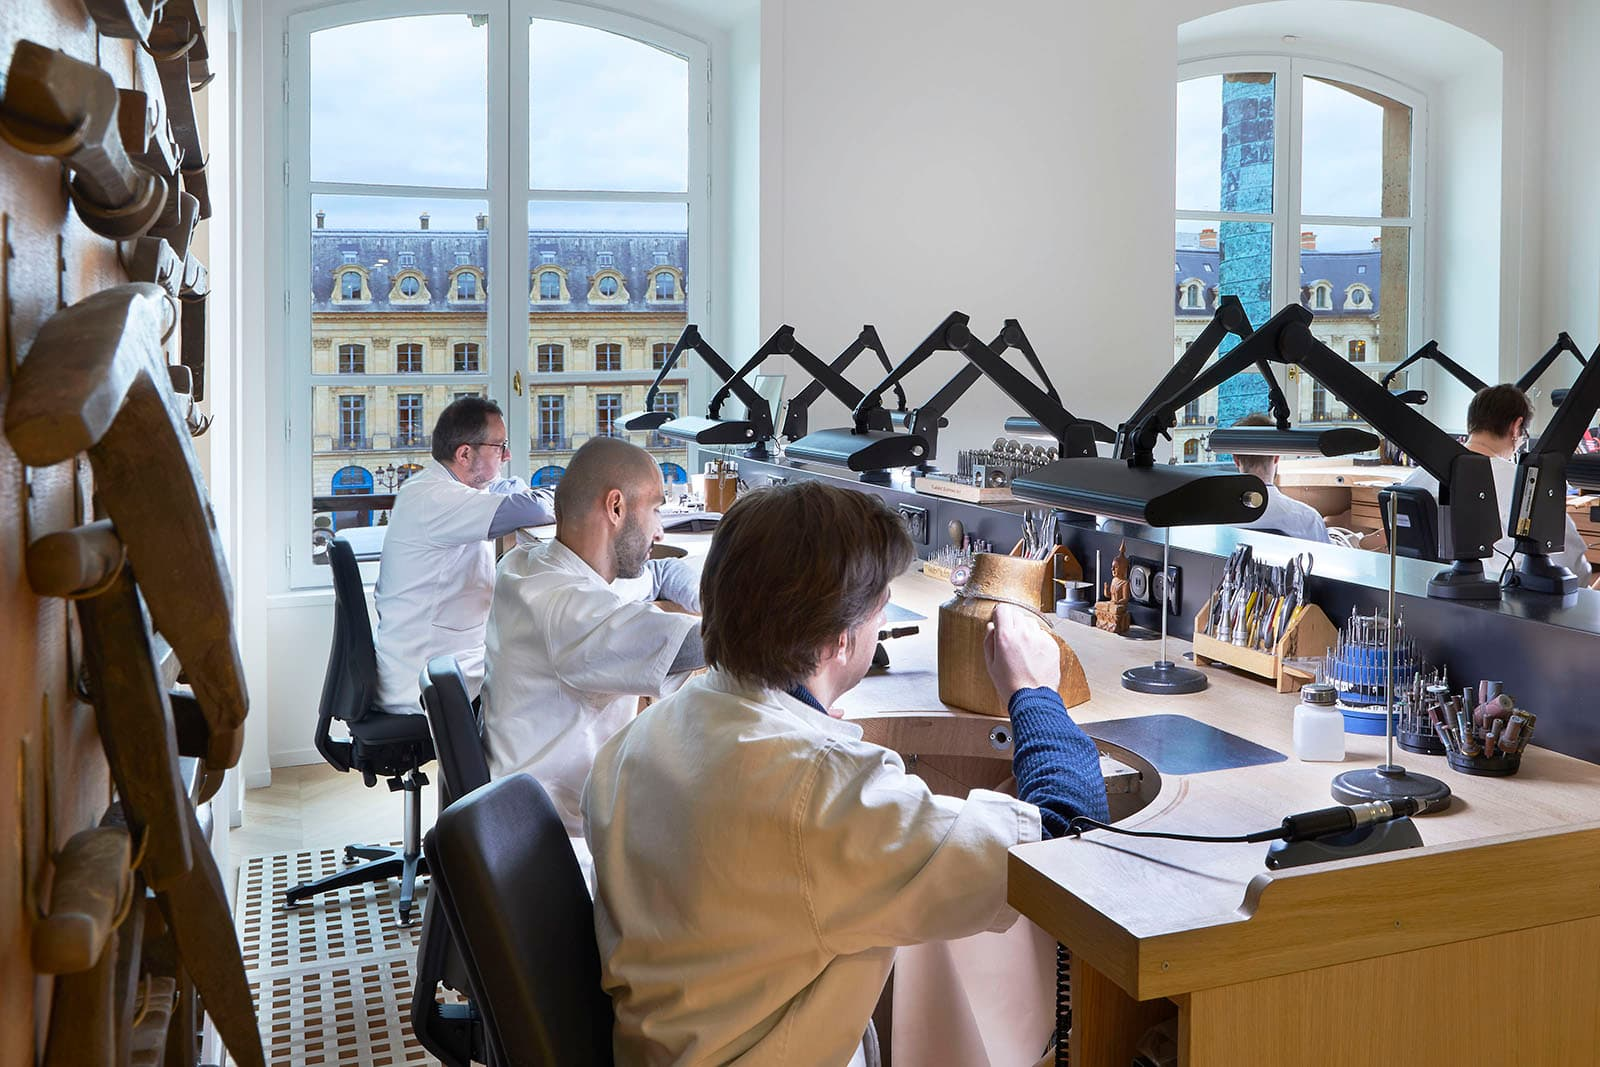 Atelier of the Chaumet boutique in Place Vendome